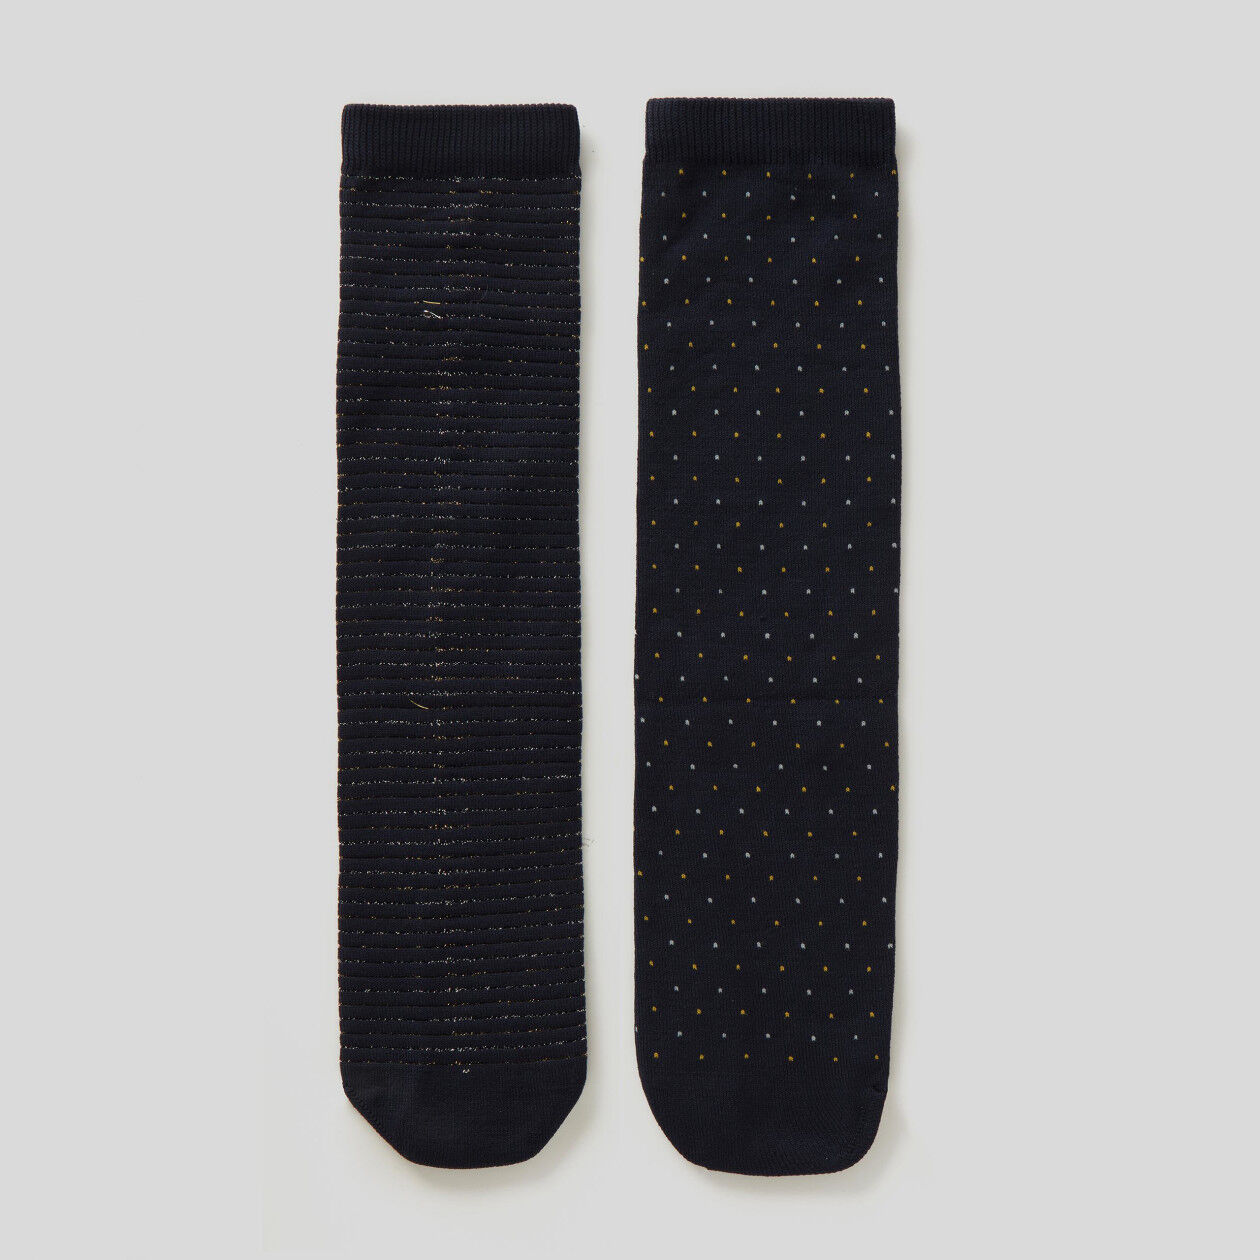 2 pairs of socks with lurex